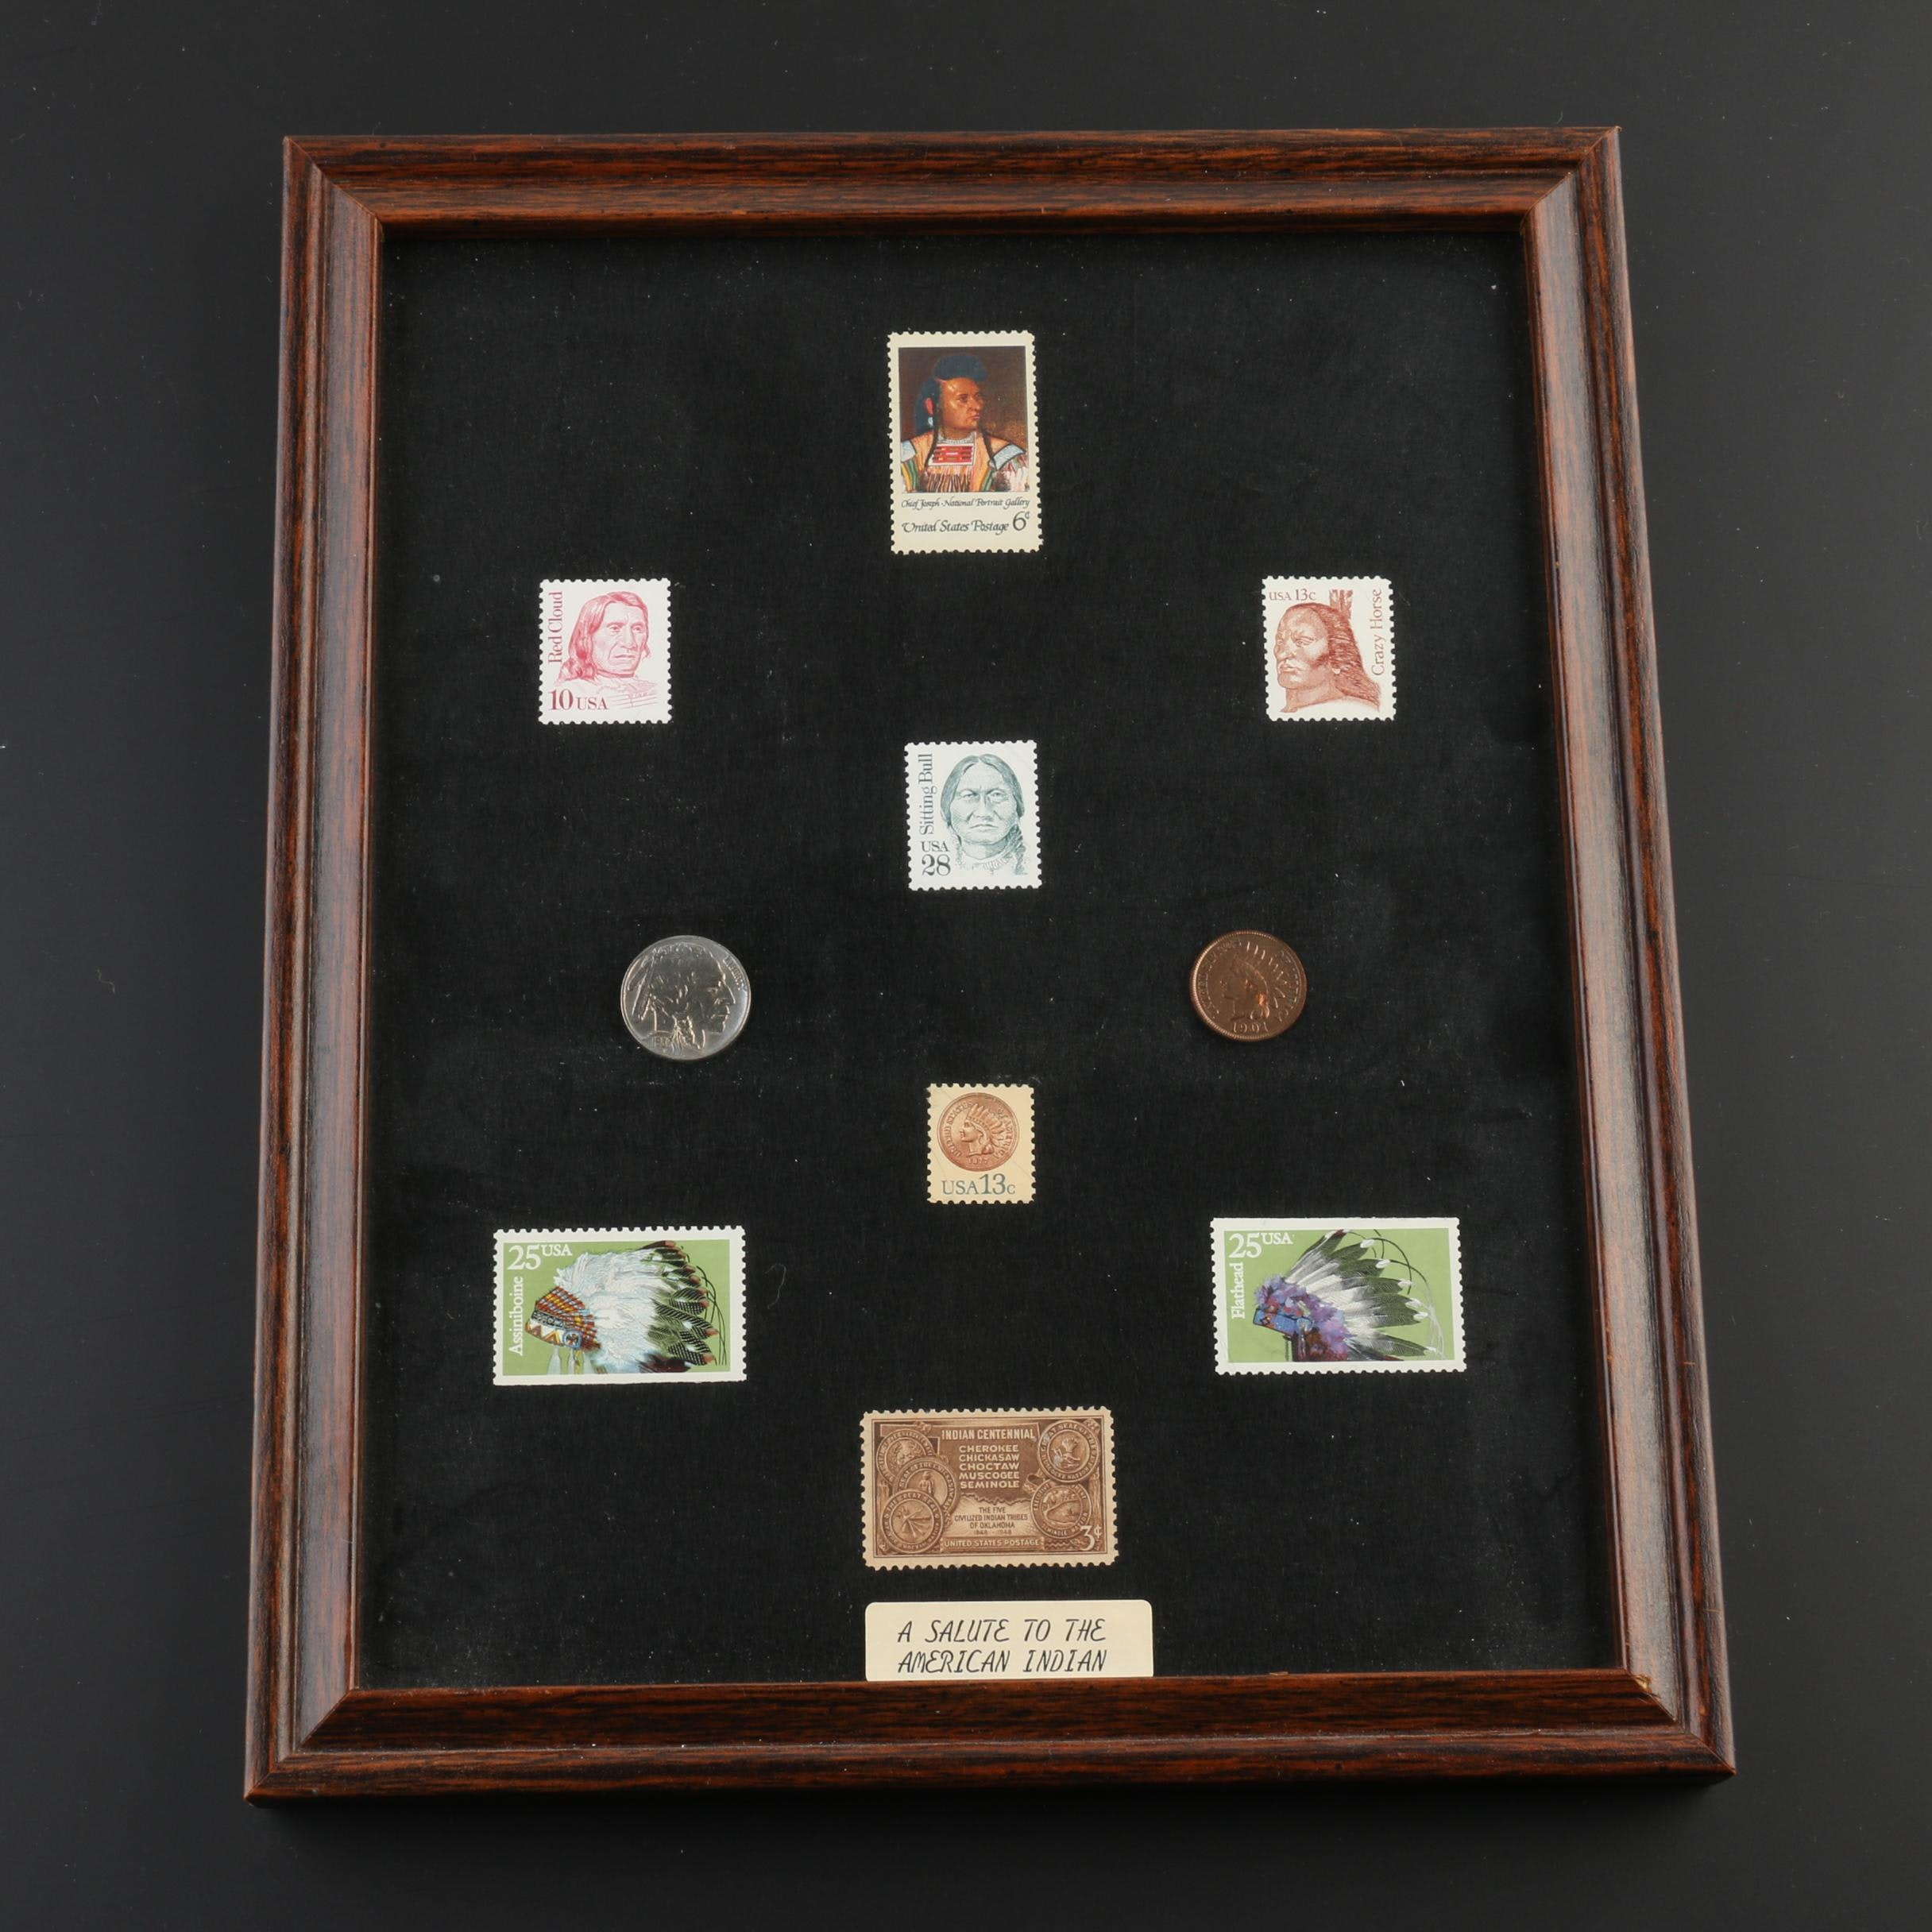 Framed Native American-Themed Stamp and Coin Assortment